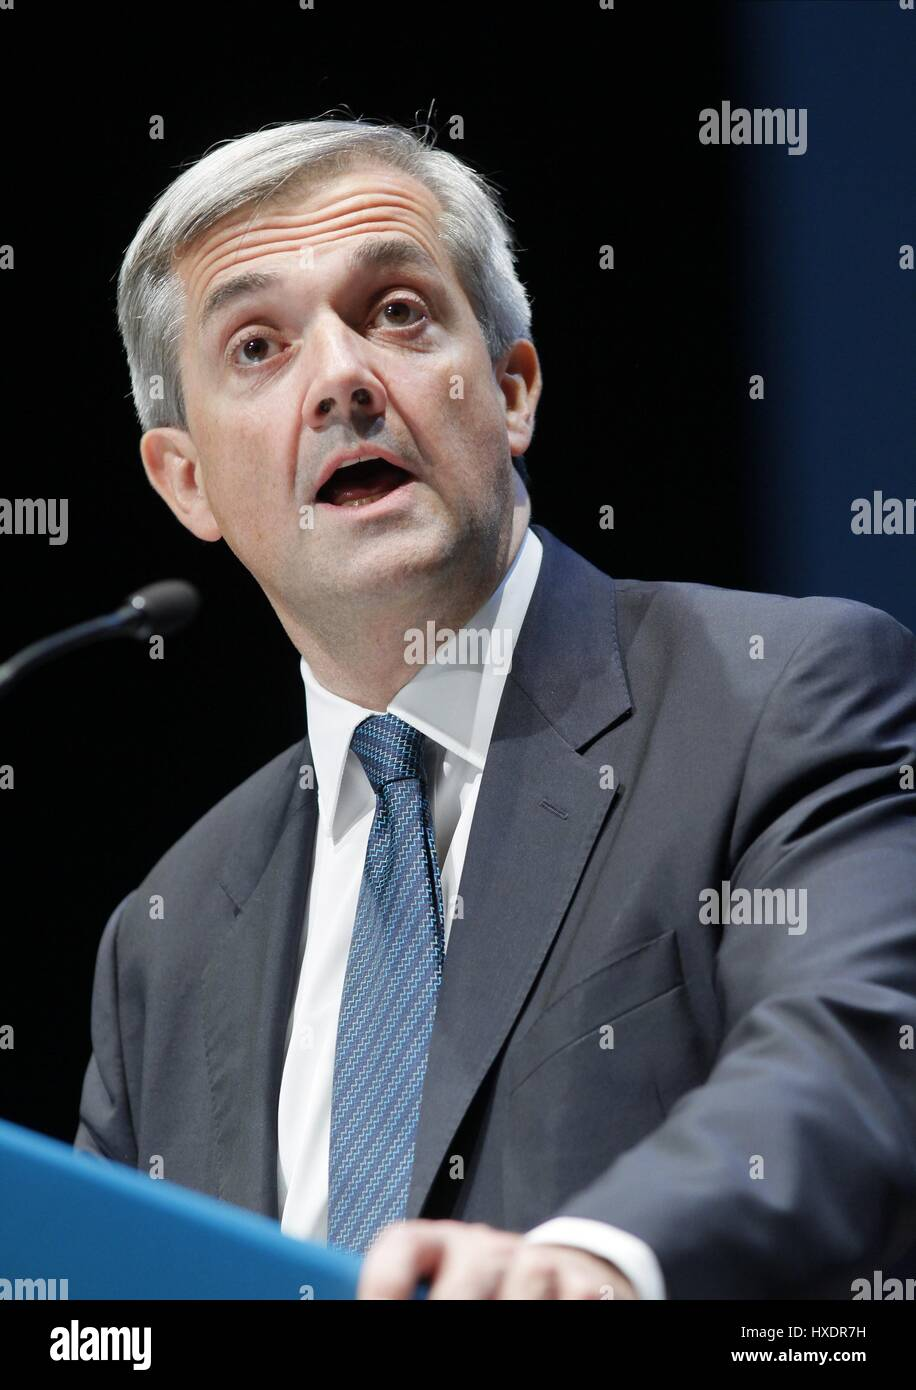 CHRIS HUHNE MP SECRETARY OF STATE FOR ENERGY 21 September 2010 THE AAC LIVERPOOL ENGLAND - Stock Image